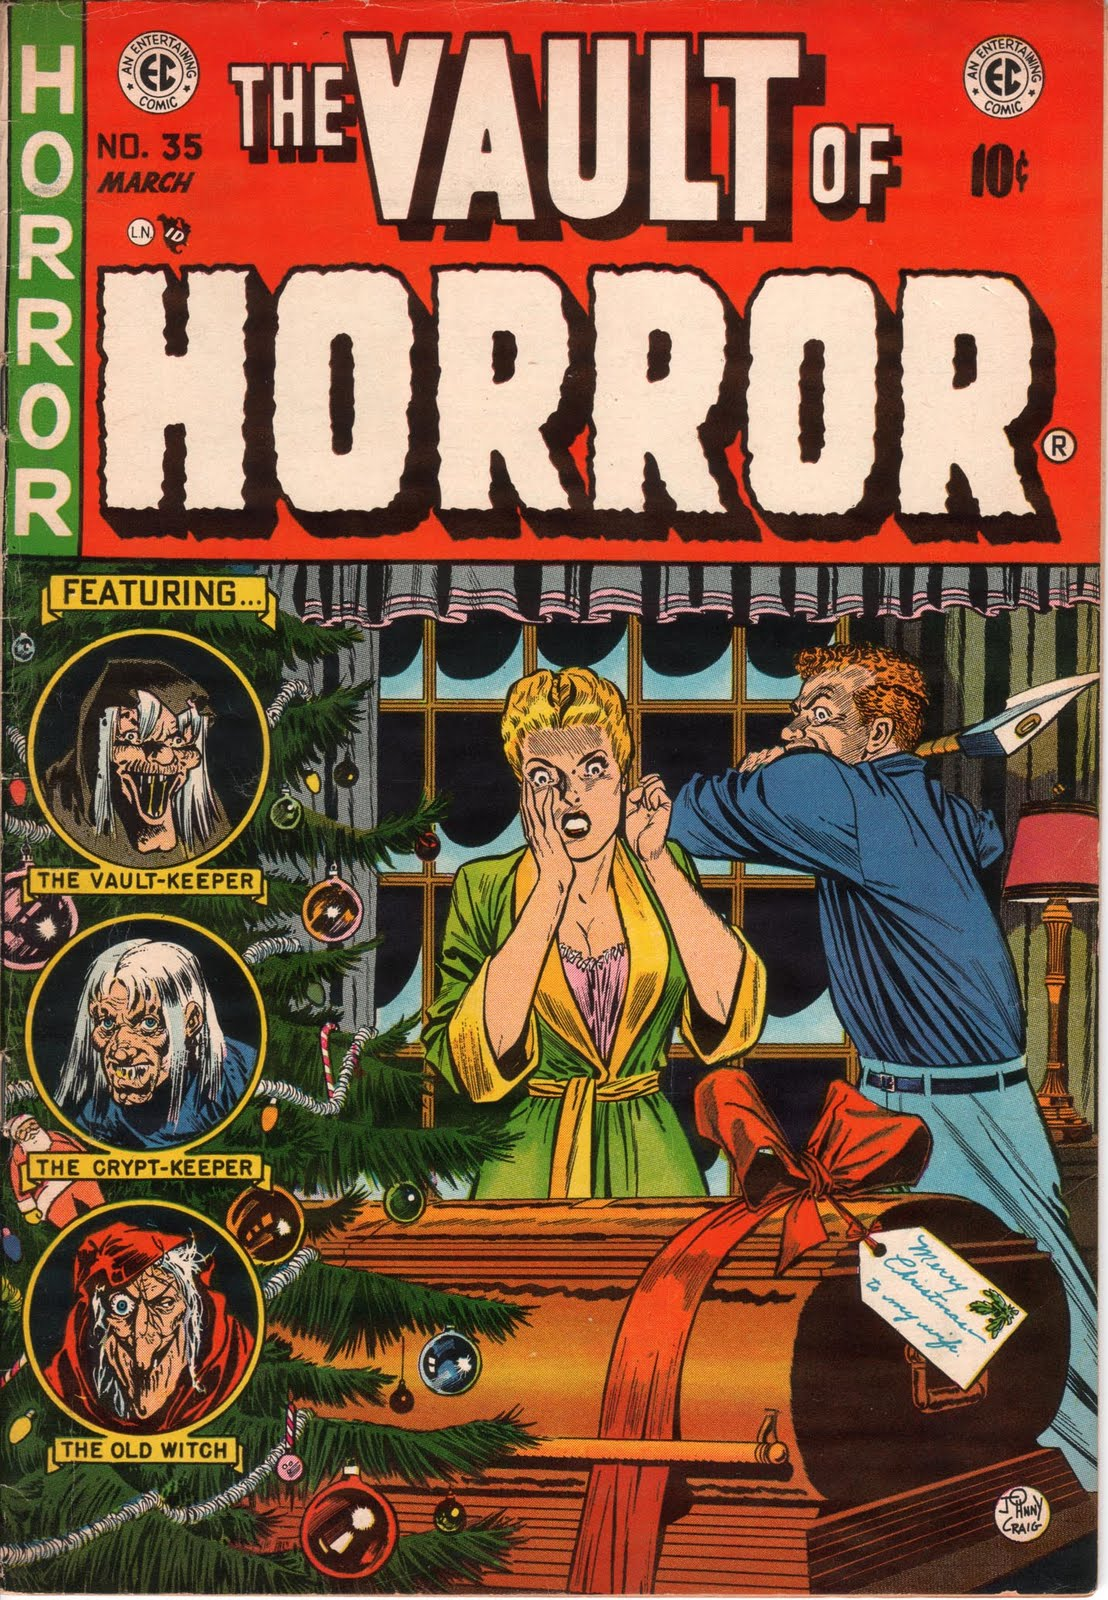 Imaeg of Vault of Horror cover